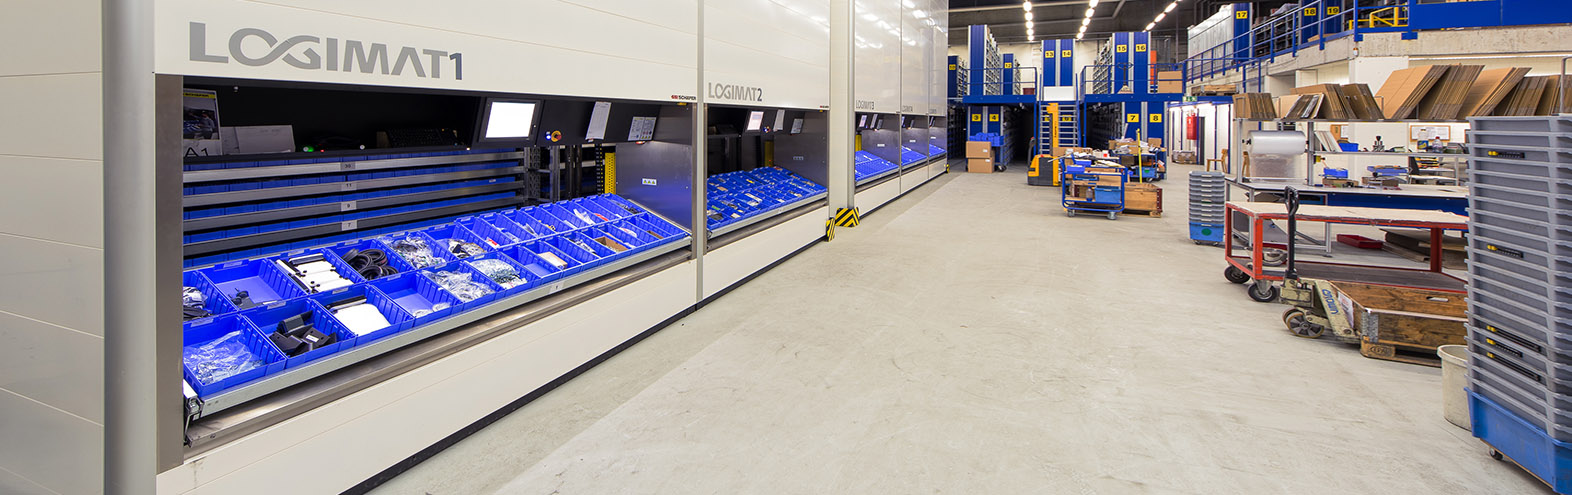 Warehouses Vertical Lift Module Systems. Quality Logimat Systems. SSI Schaefer. www.schaefershelving.com